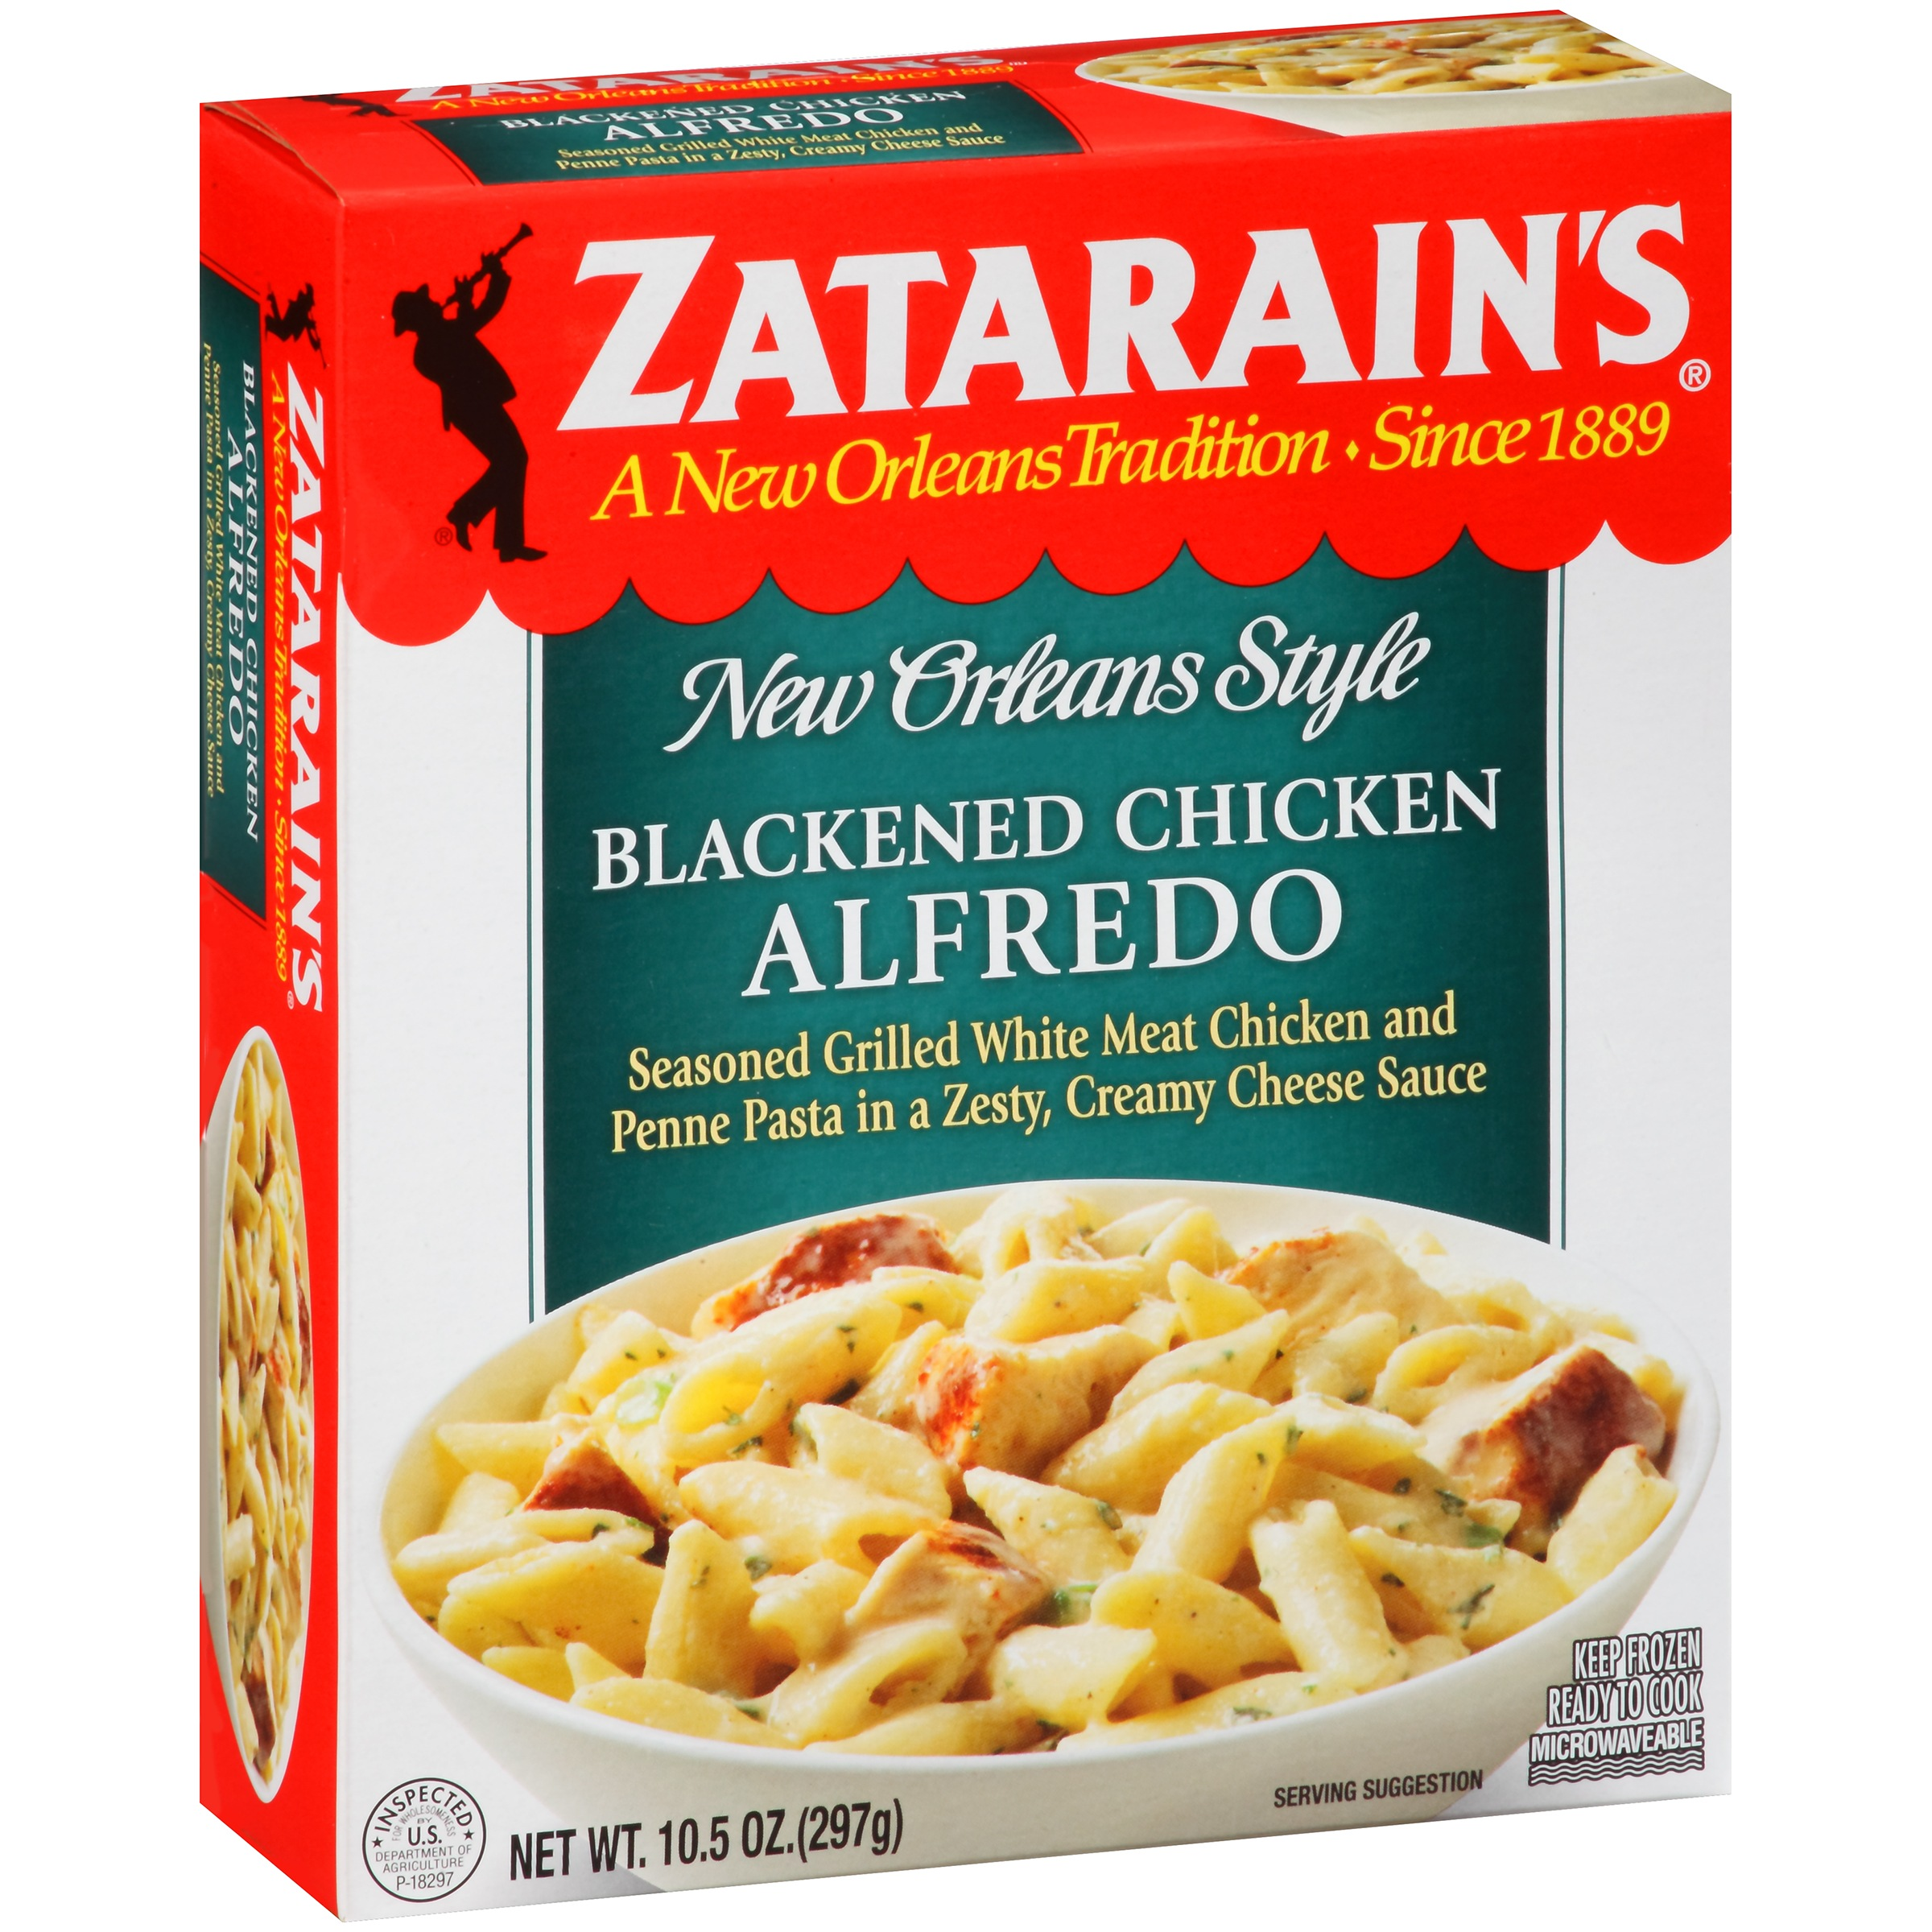 Zatarainu0027s® Blackened Chicken Alfredo, Frozen, 10.5 Oz. Box Image 1 Of 8